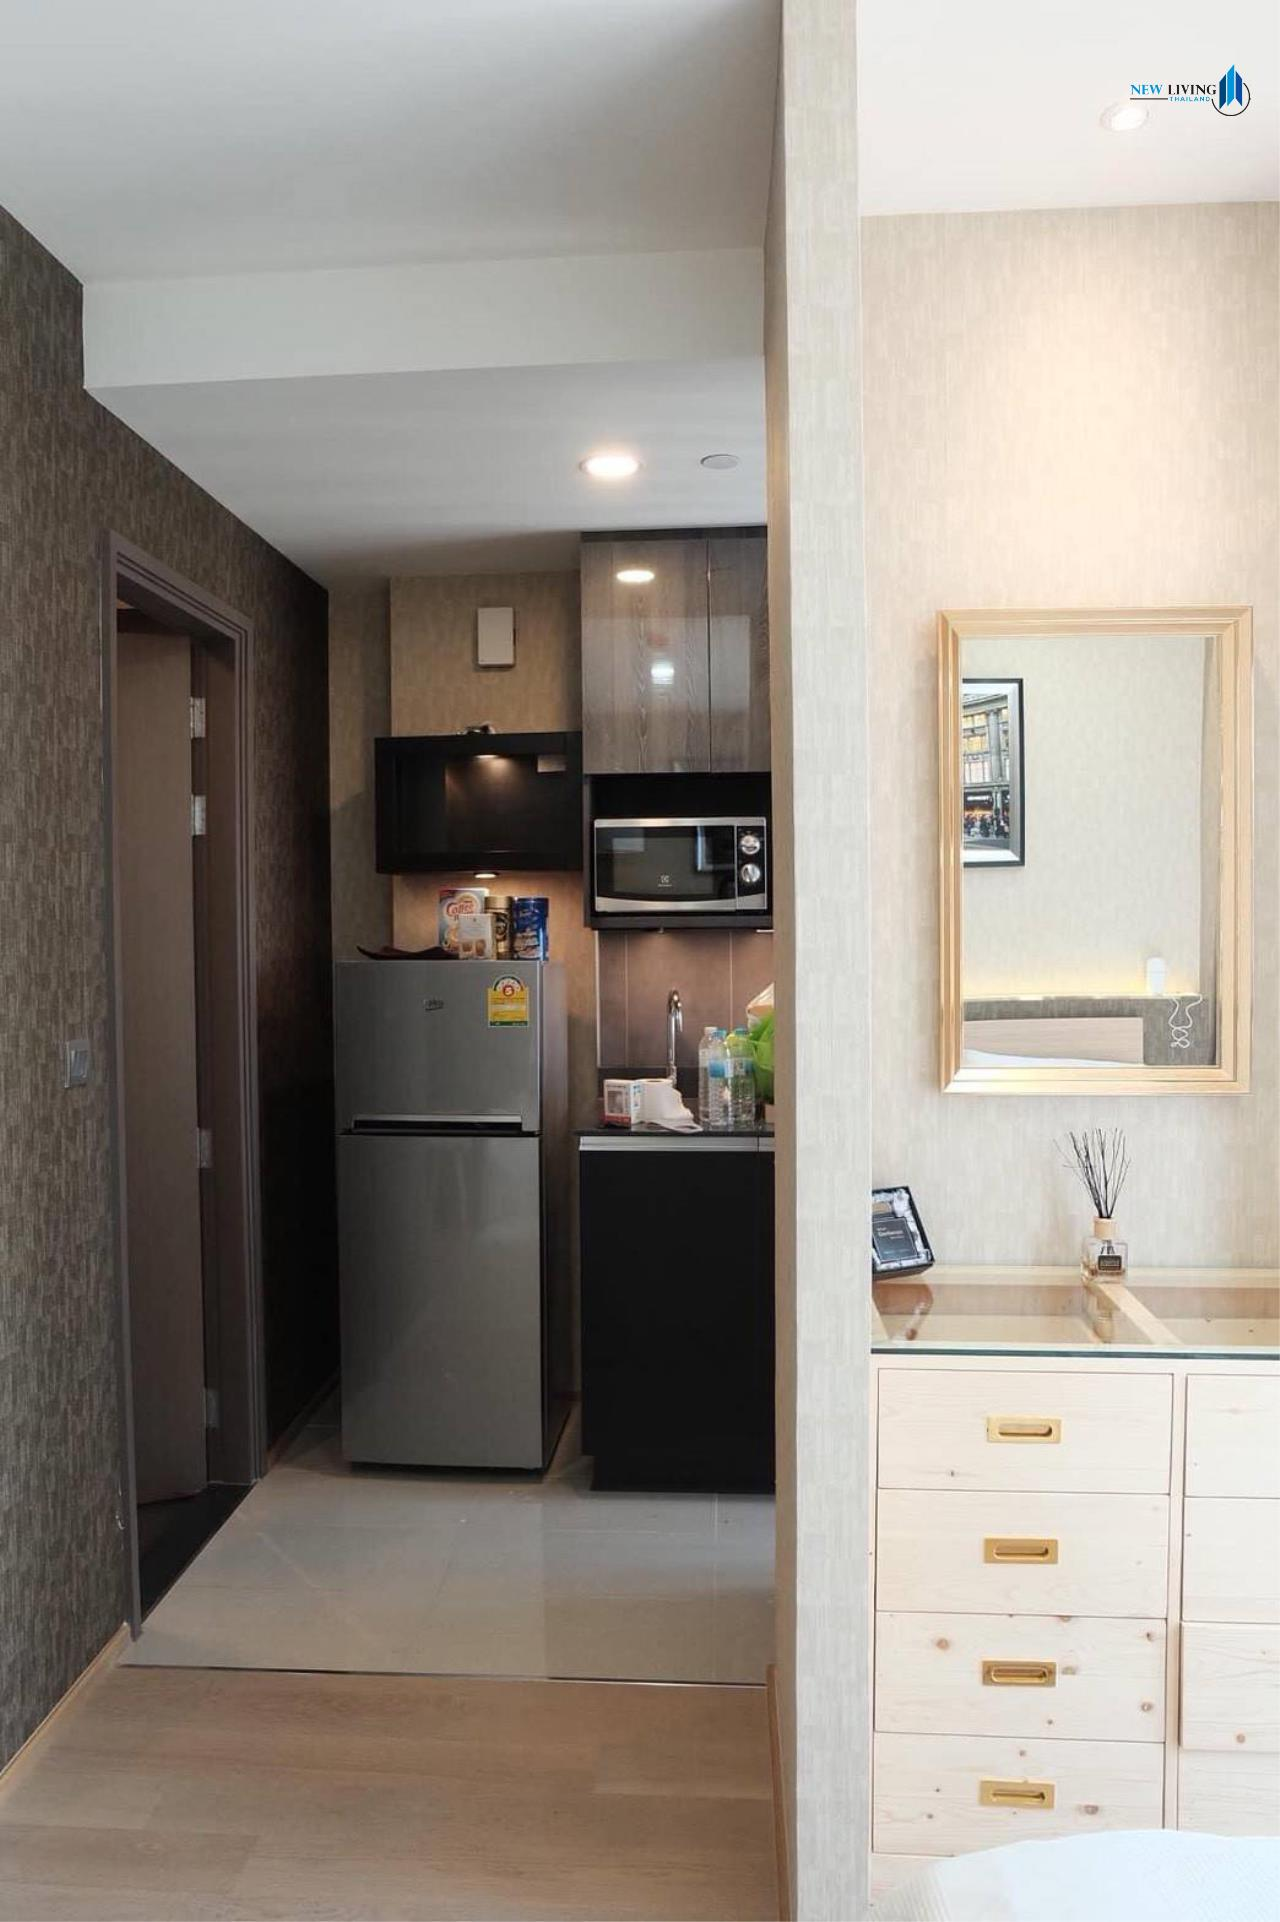 New Living Thailand Agency's +++ Urgent rent !!! Ashton Chula-Silom Studio room 24.50 sq m, beautiful room, good view +++ 8